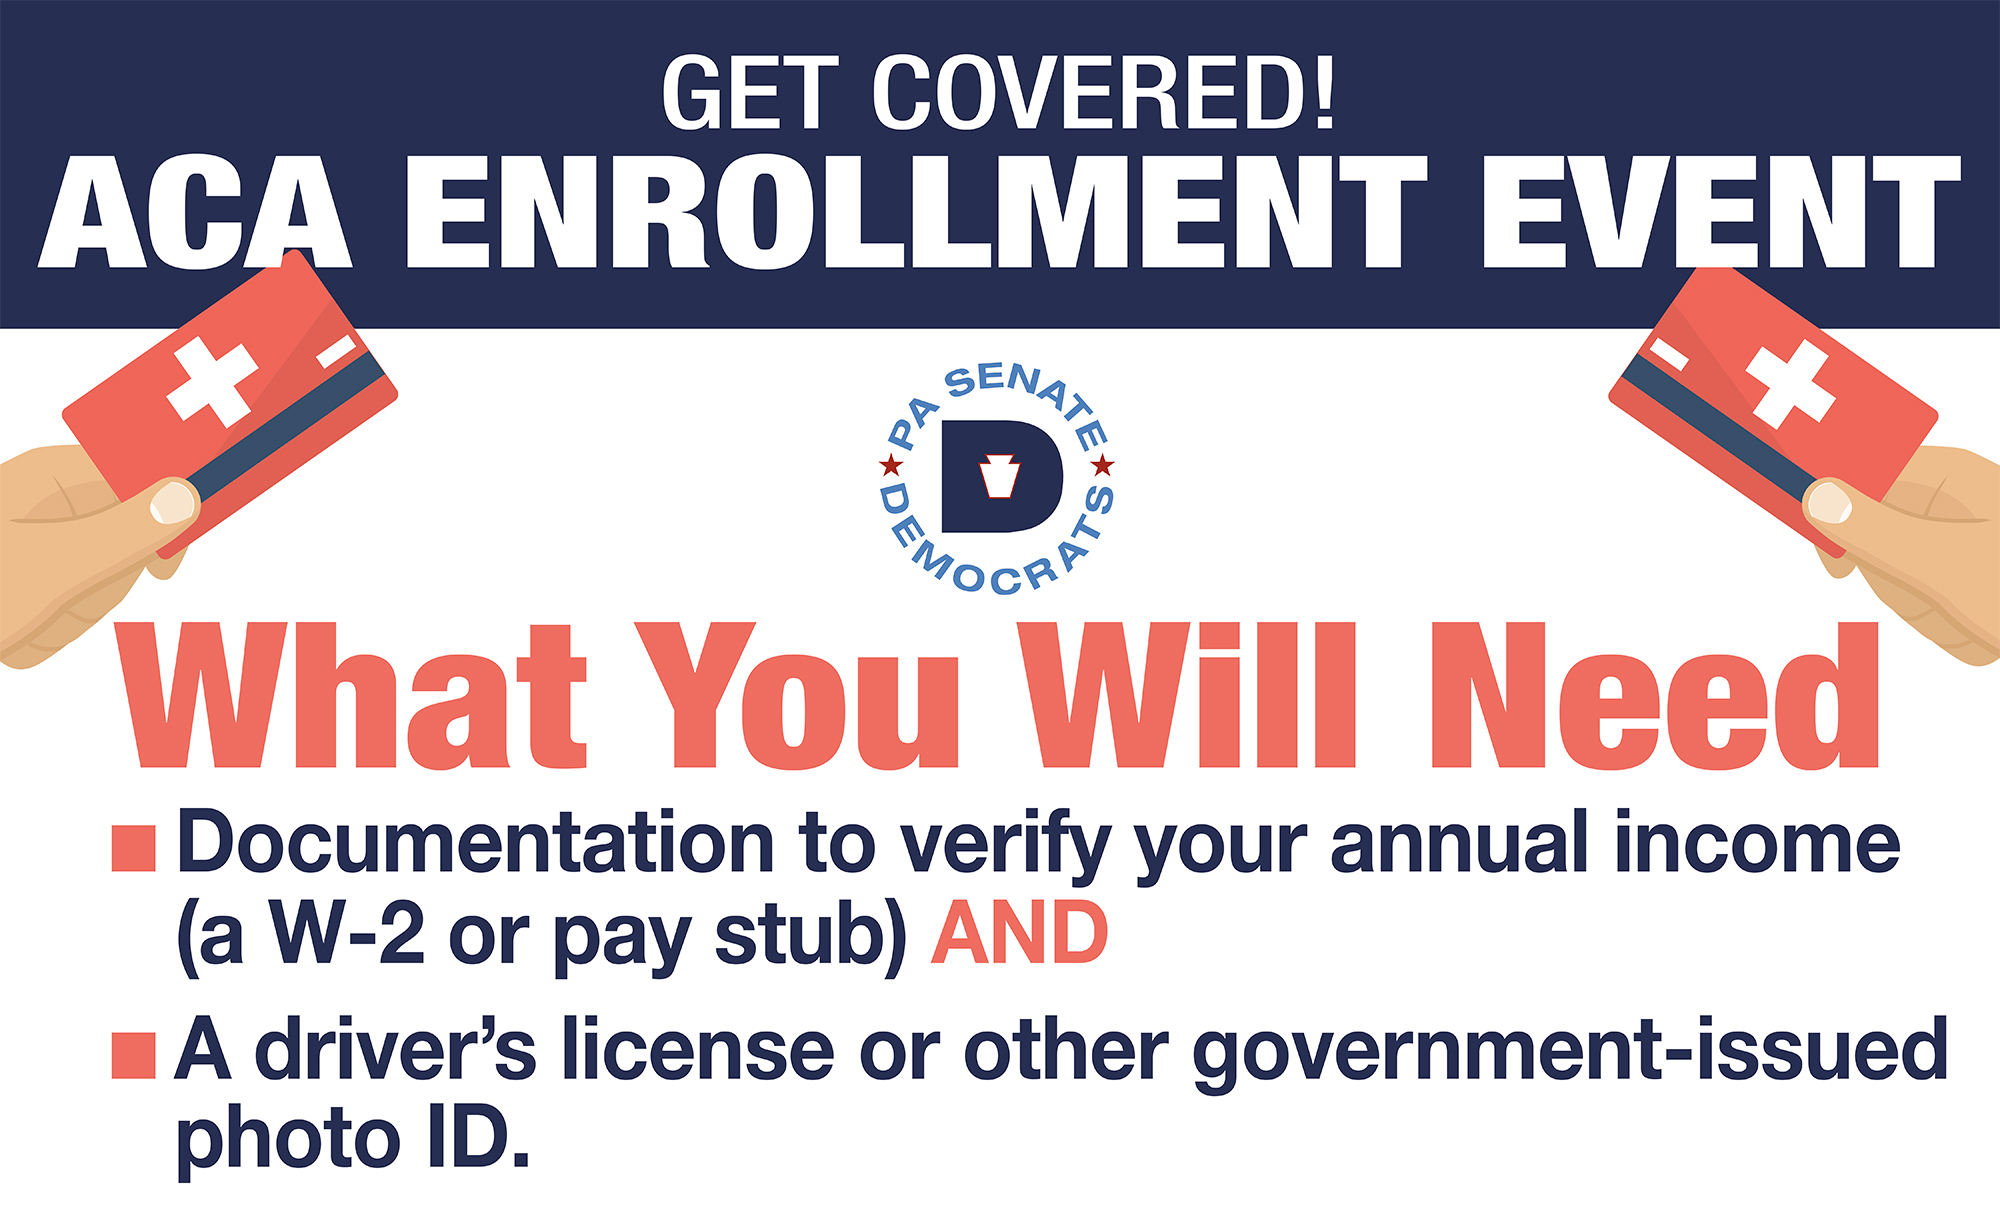 Flyer for the ACA Enrollment Event reminding attendees to bring documentation to verify their income (a W-2 or pay stub) and a driver's license or other government-issued photo identification.